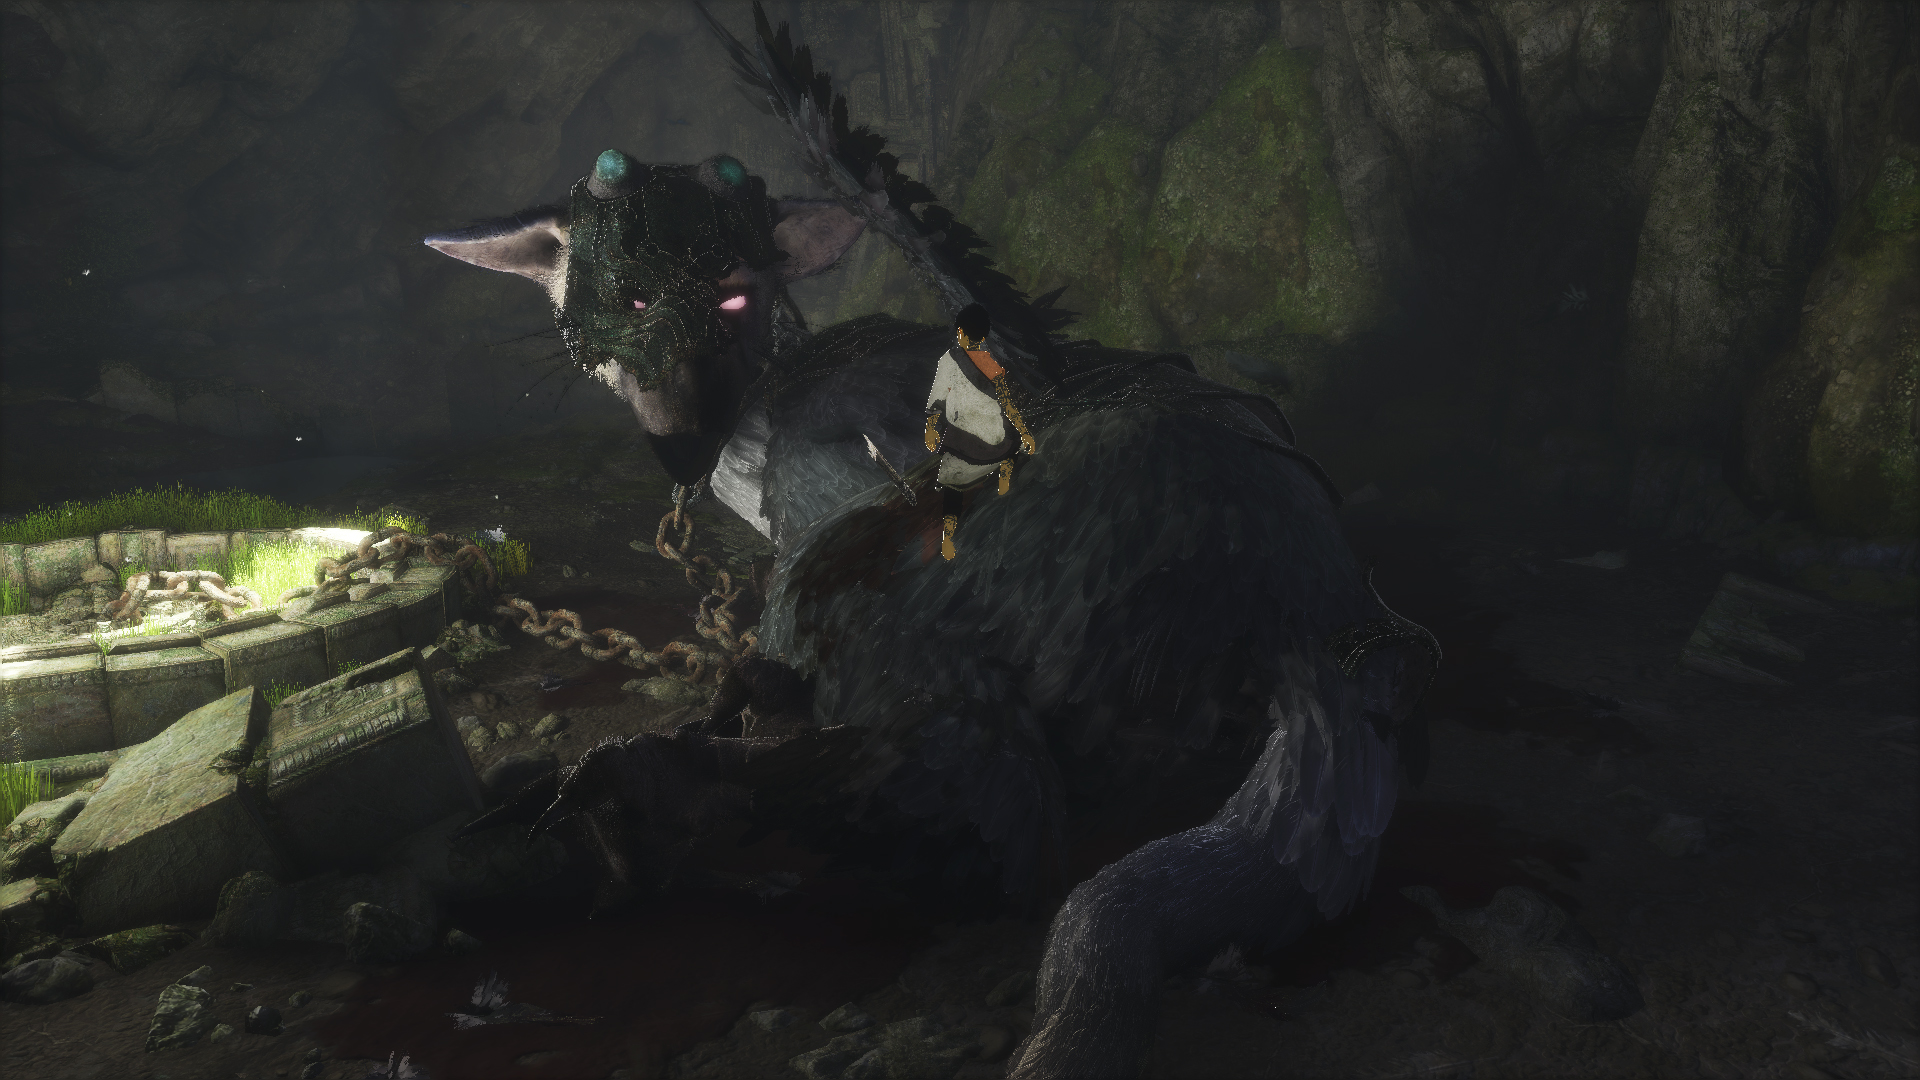 The-Last-Guardian-screen-1-may-26.jpg - Last Guardian, the